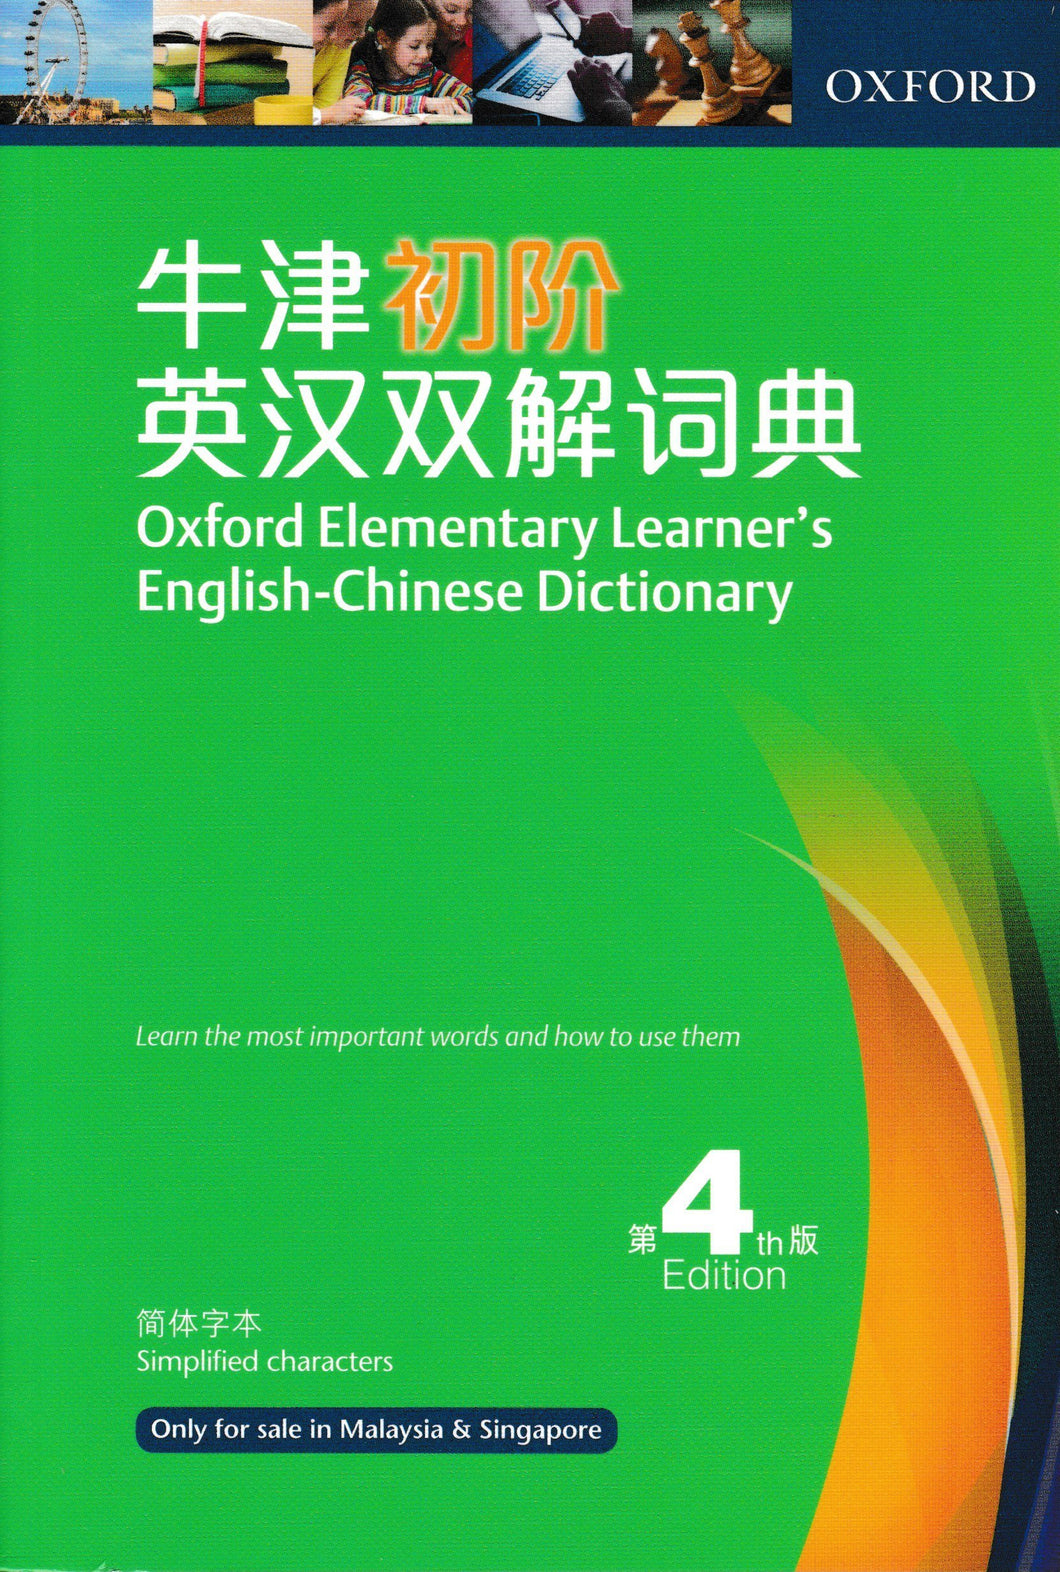 OxfordUniversityPress: Oxford Elementary Learner's English - Chinese Dictionary 4th Edition